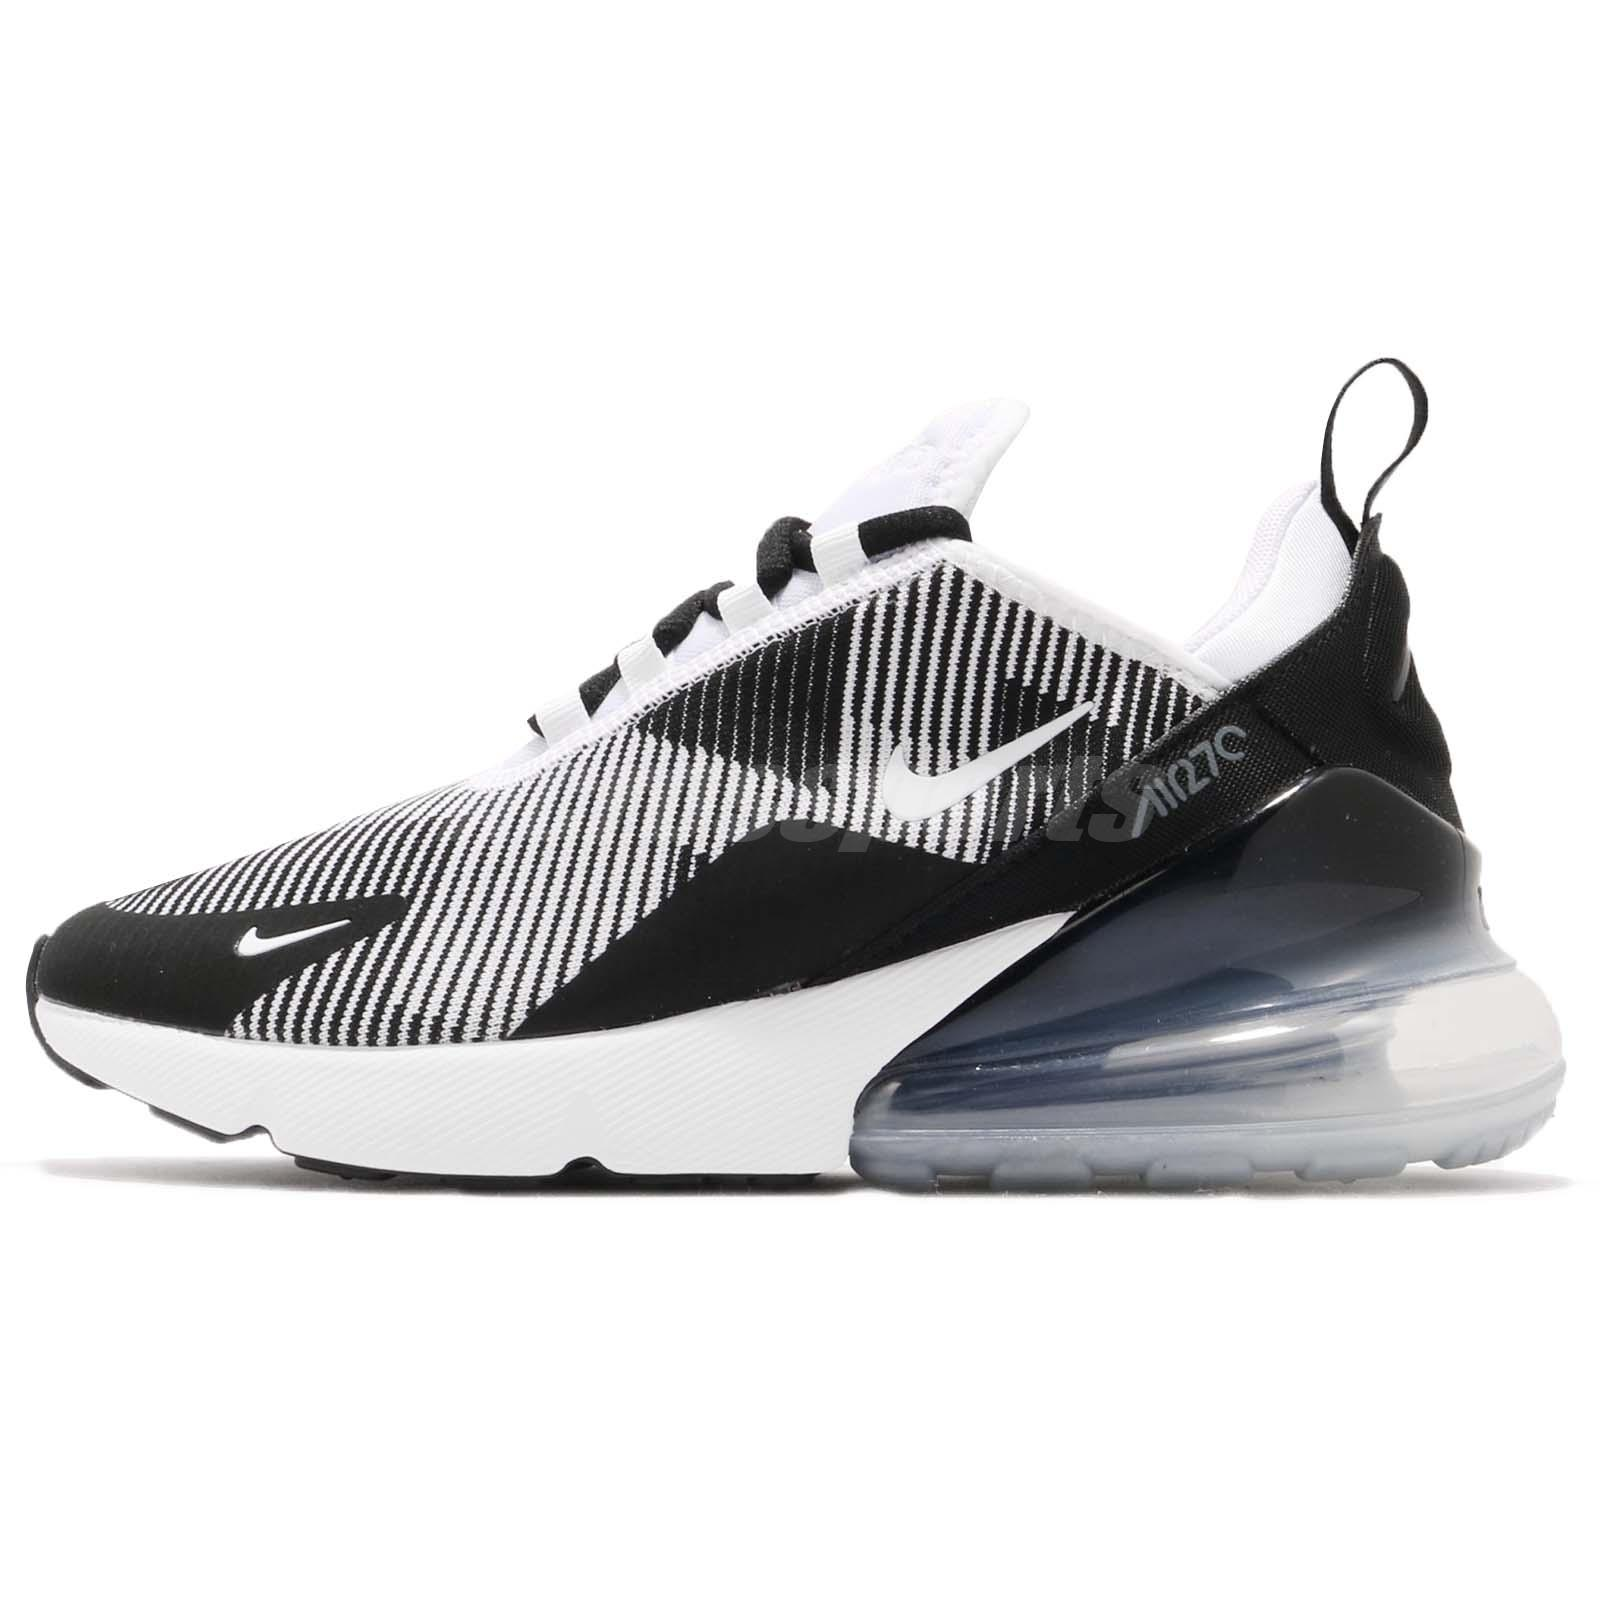 0311440e1548e6 Nike Air Max 270 KJCRD GS Black White Grey Kid Youth Women Shoes AR0301-007